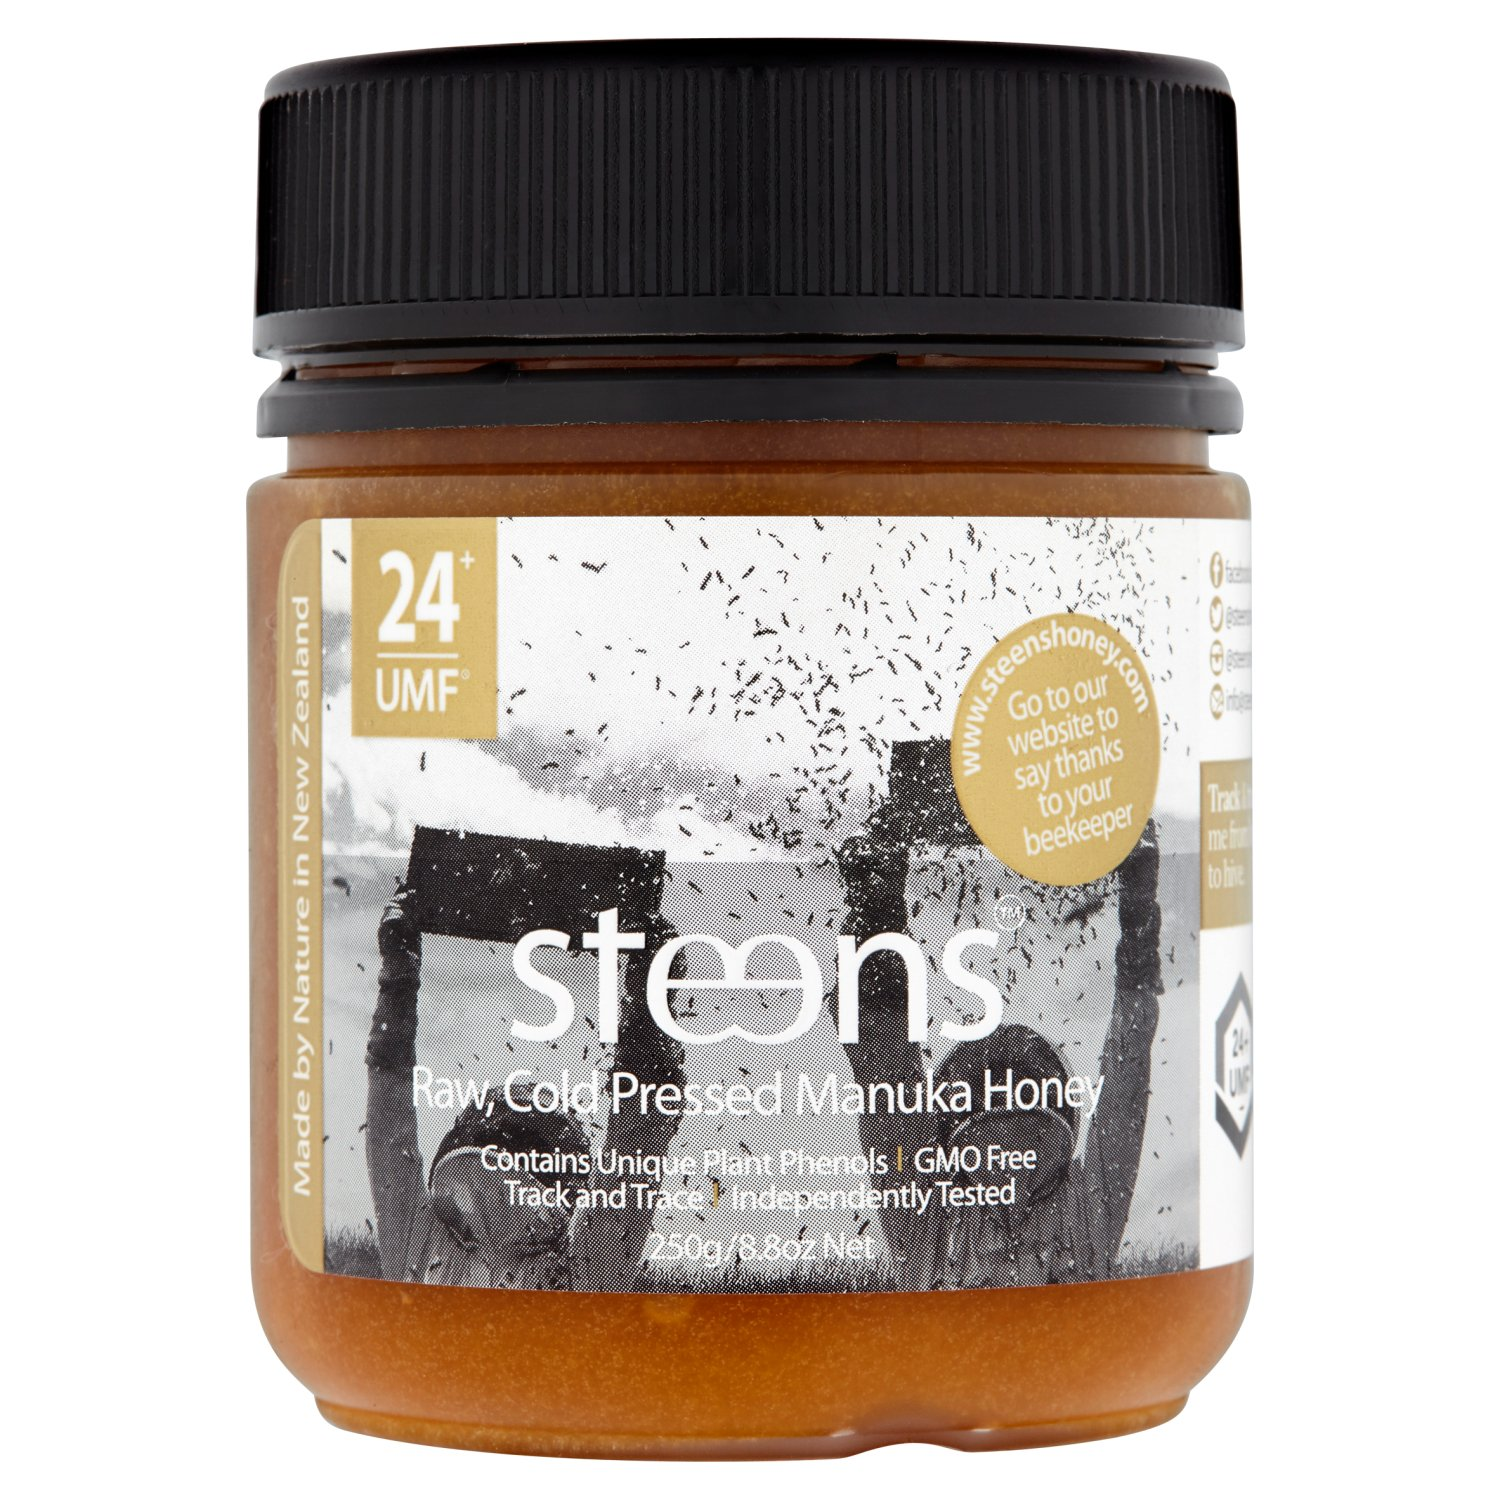 Steens UMF 24 Manuka Honey (MGO 1122) 8.8 Ounce jar with box | Raw Unpasteurized Honey From New Zealand | Traceability Code on Each Label